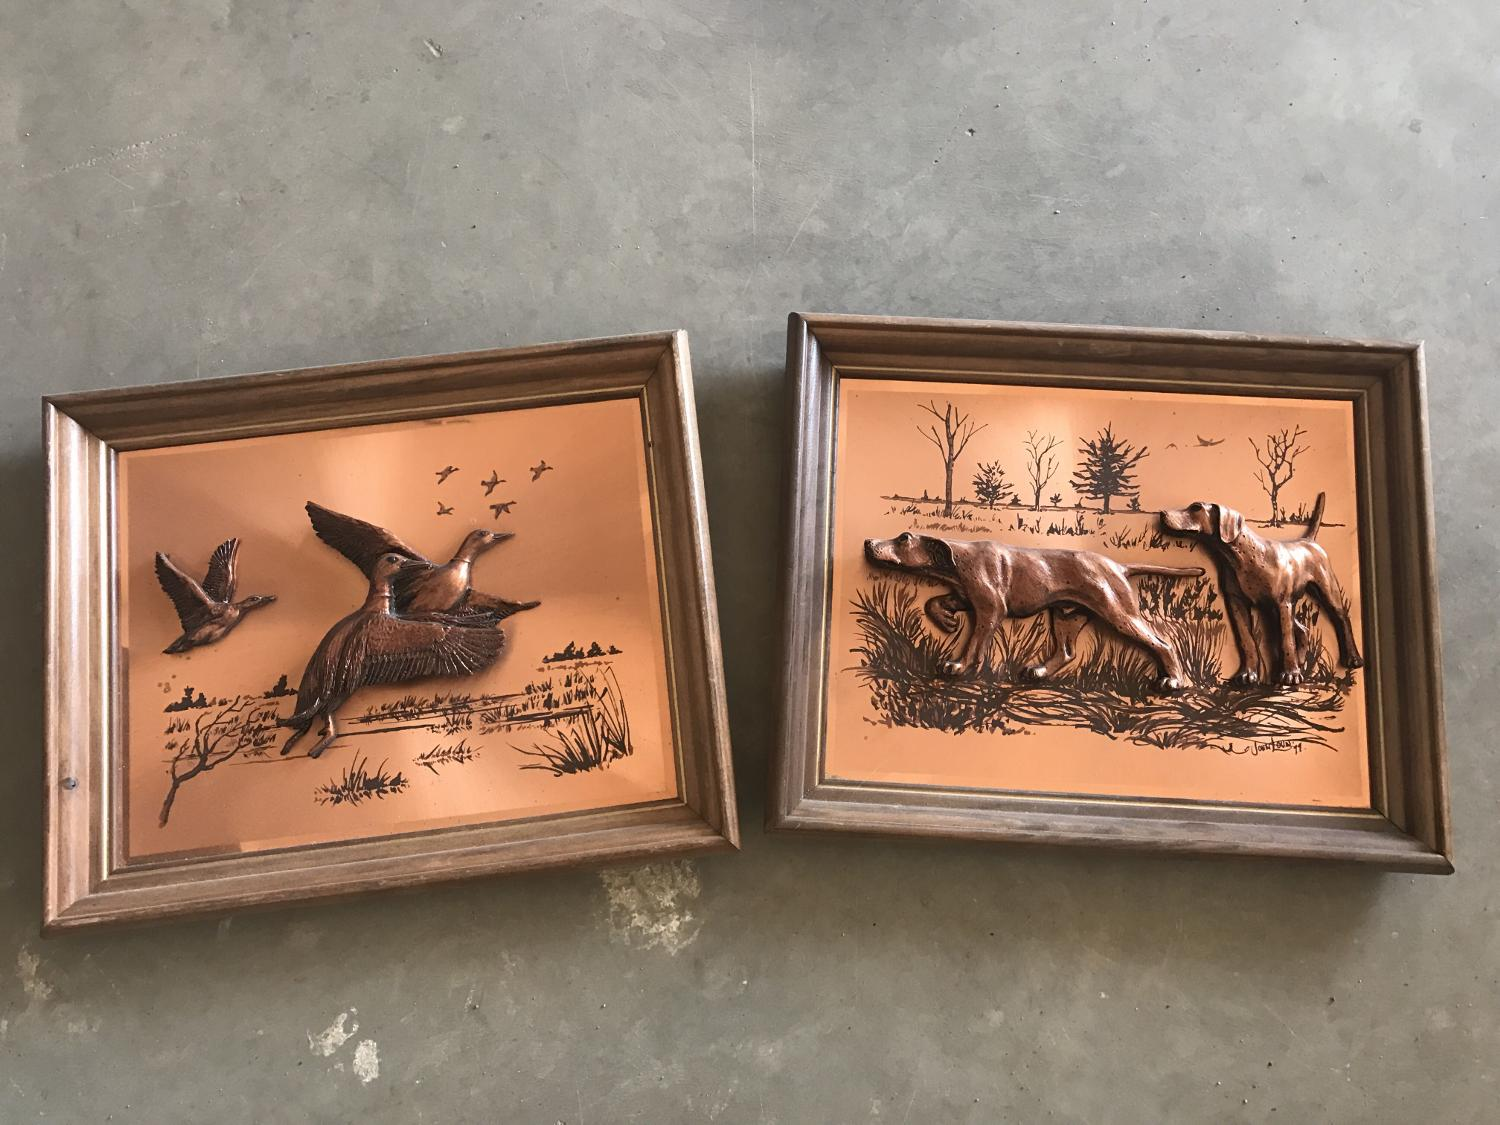 Best Two Hunting Wall Art Pictures 5 For Sale In Minot